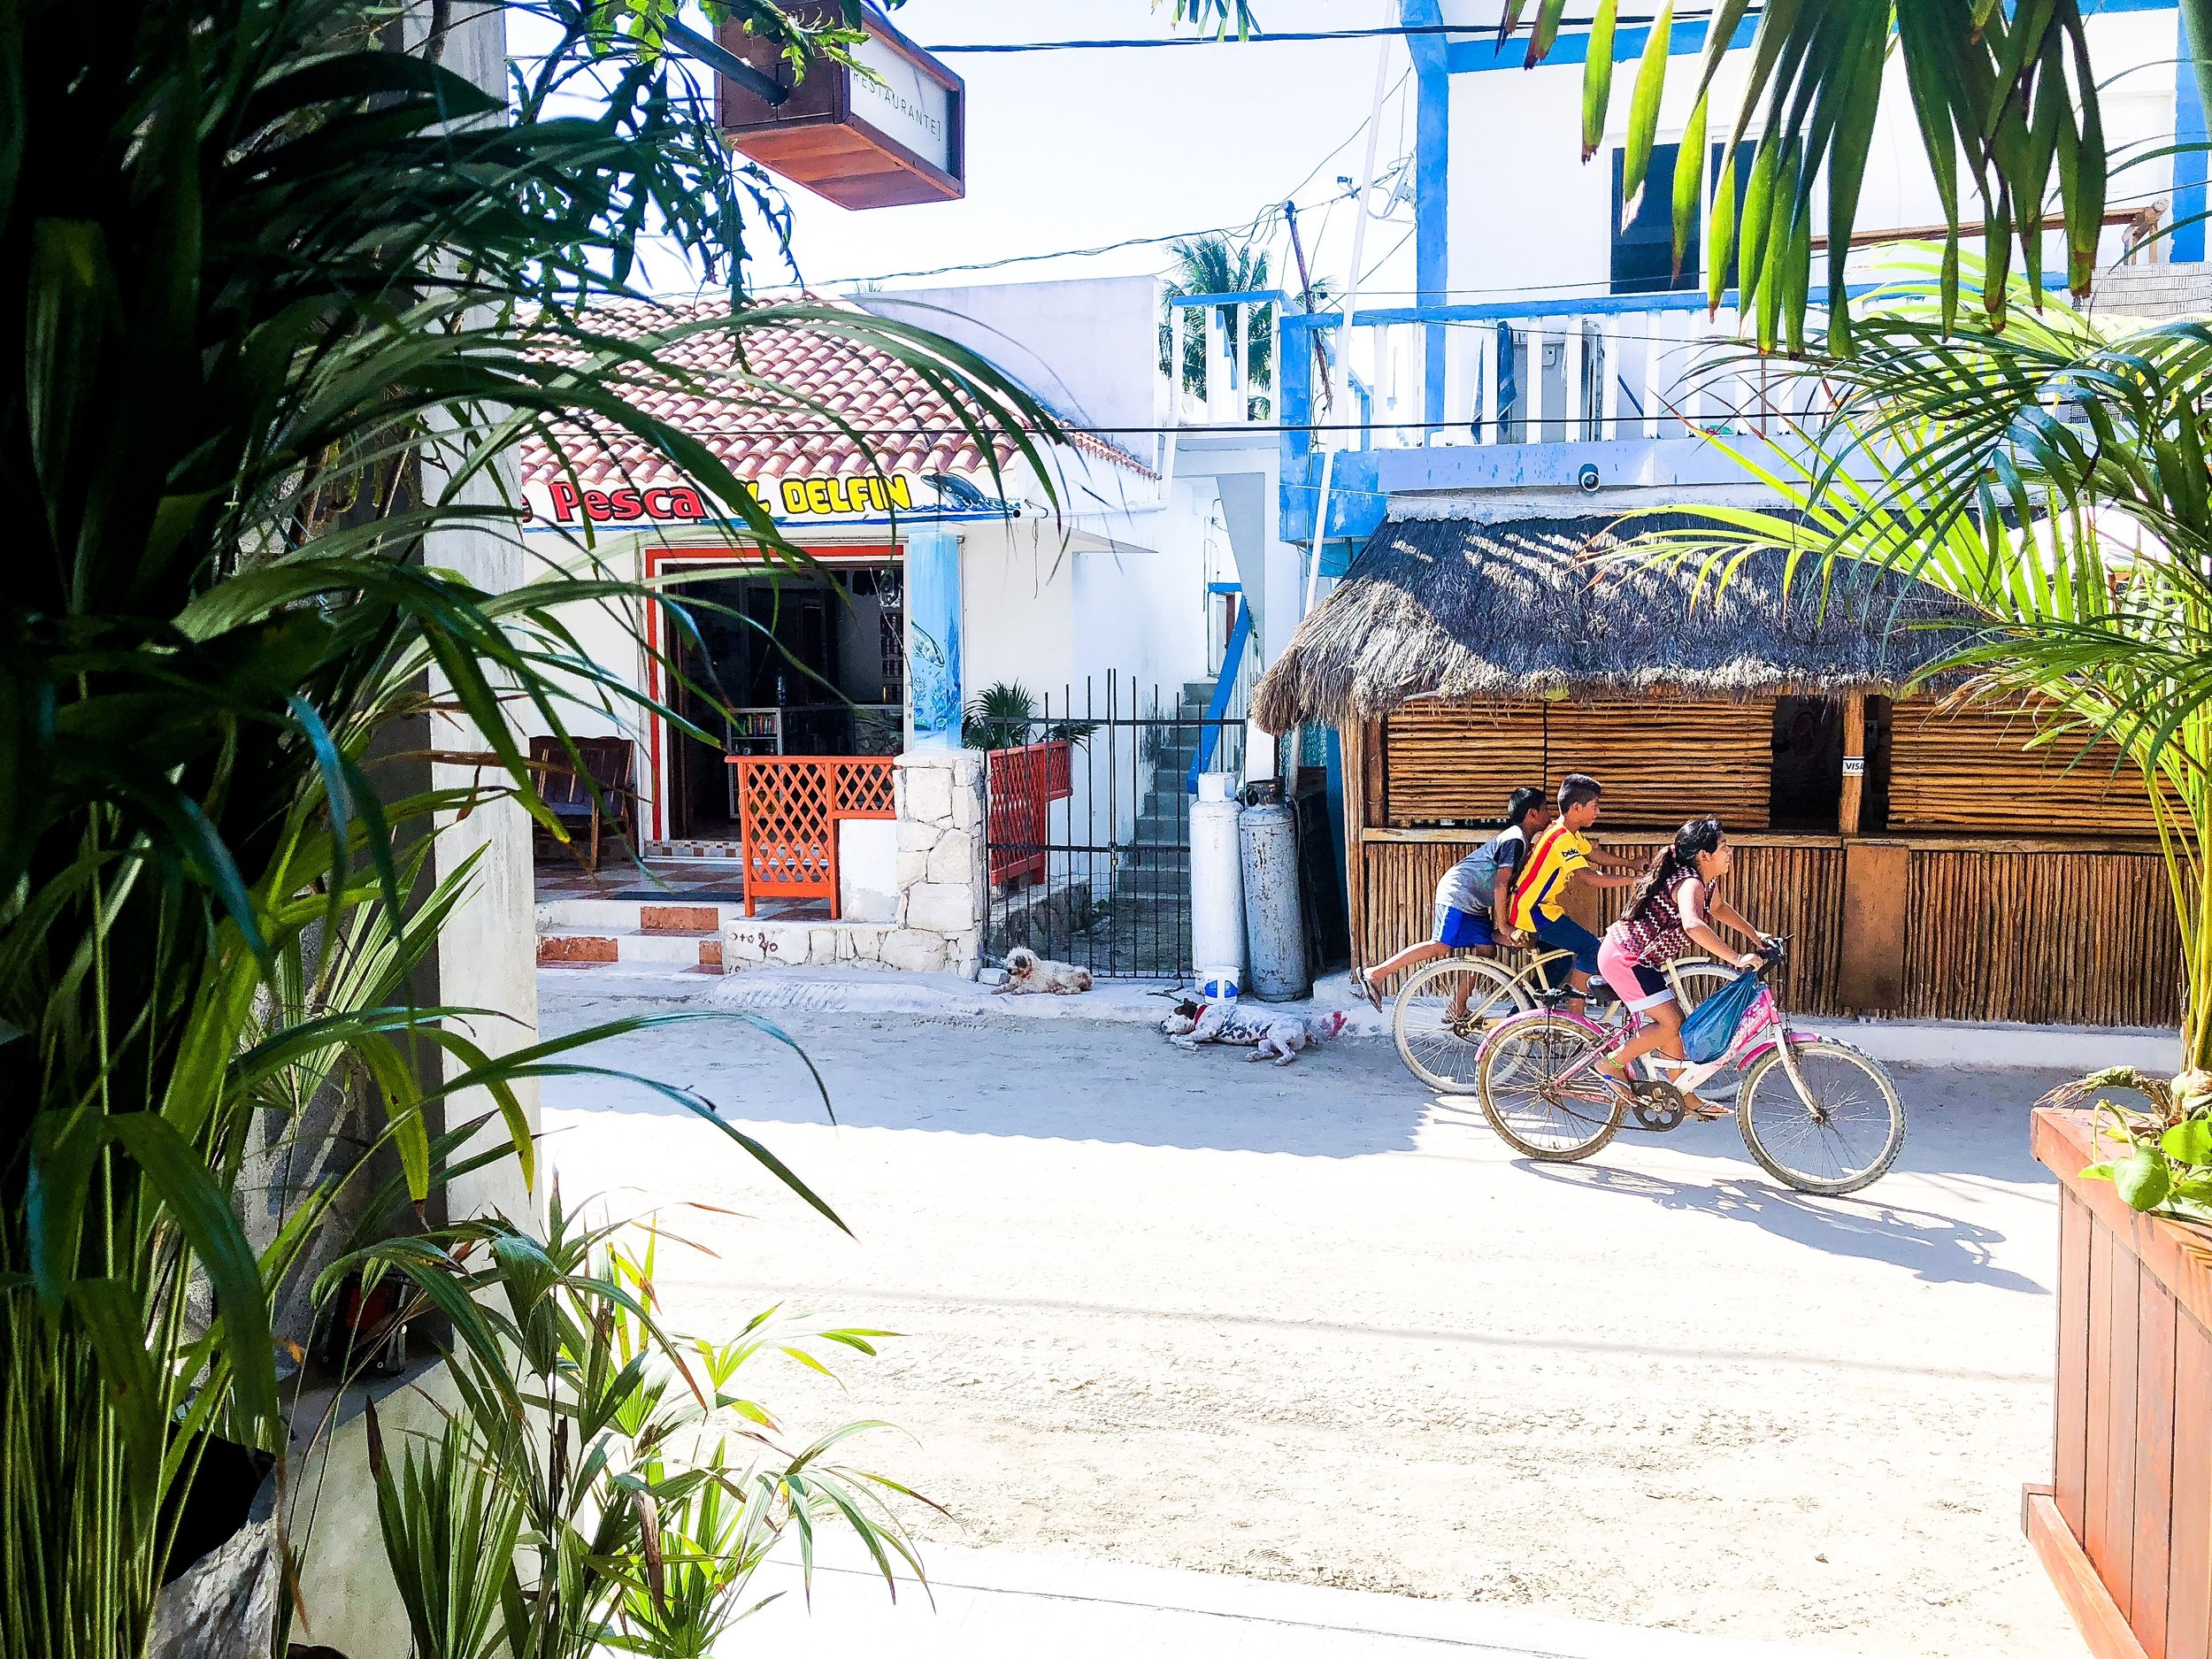 The happiest kiddos and pups lounging in the town - Isla de Holbox, Mexico